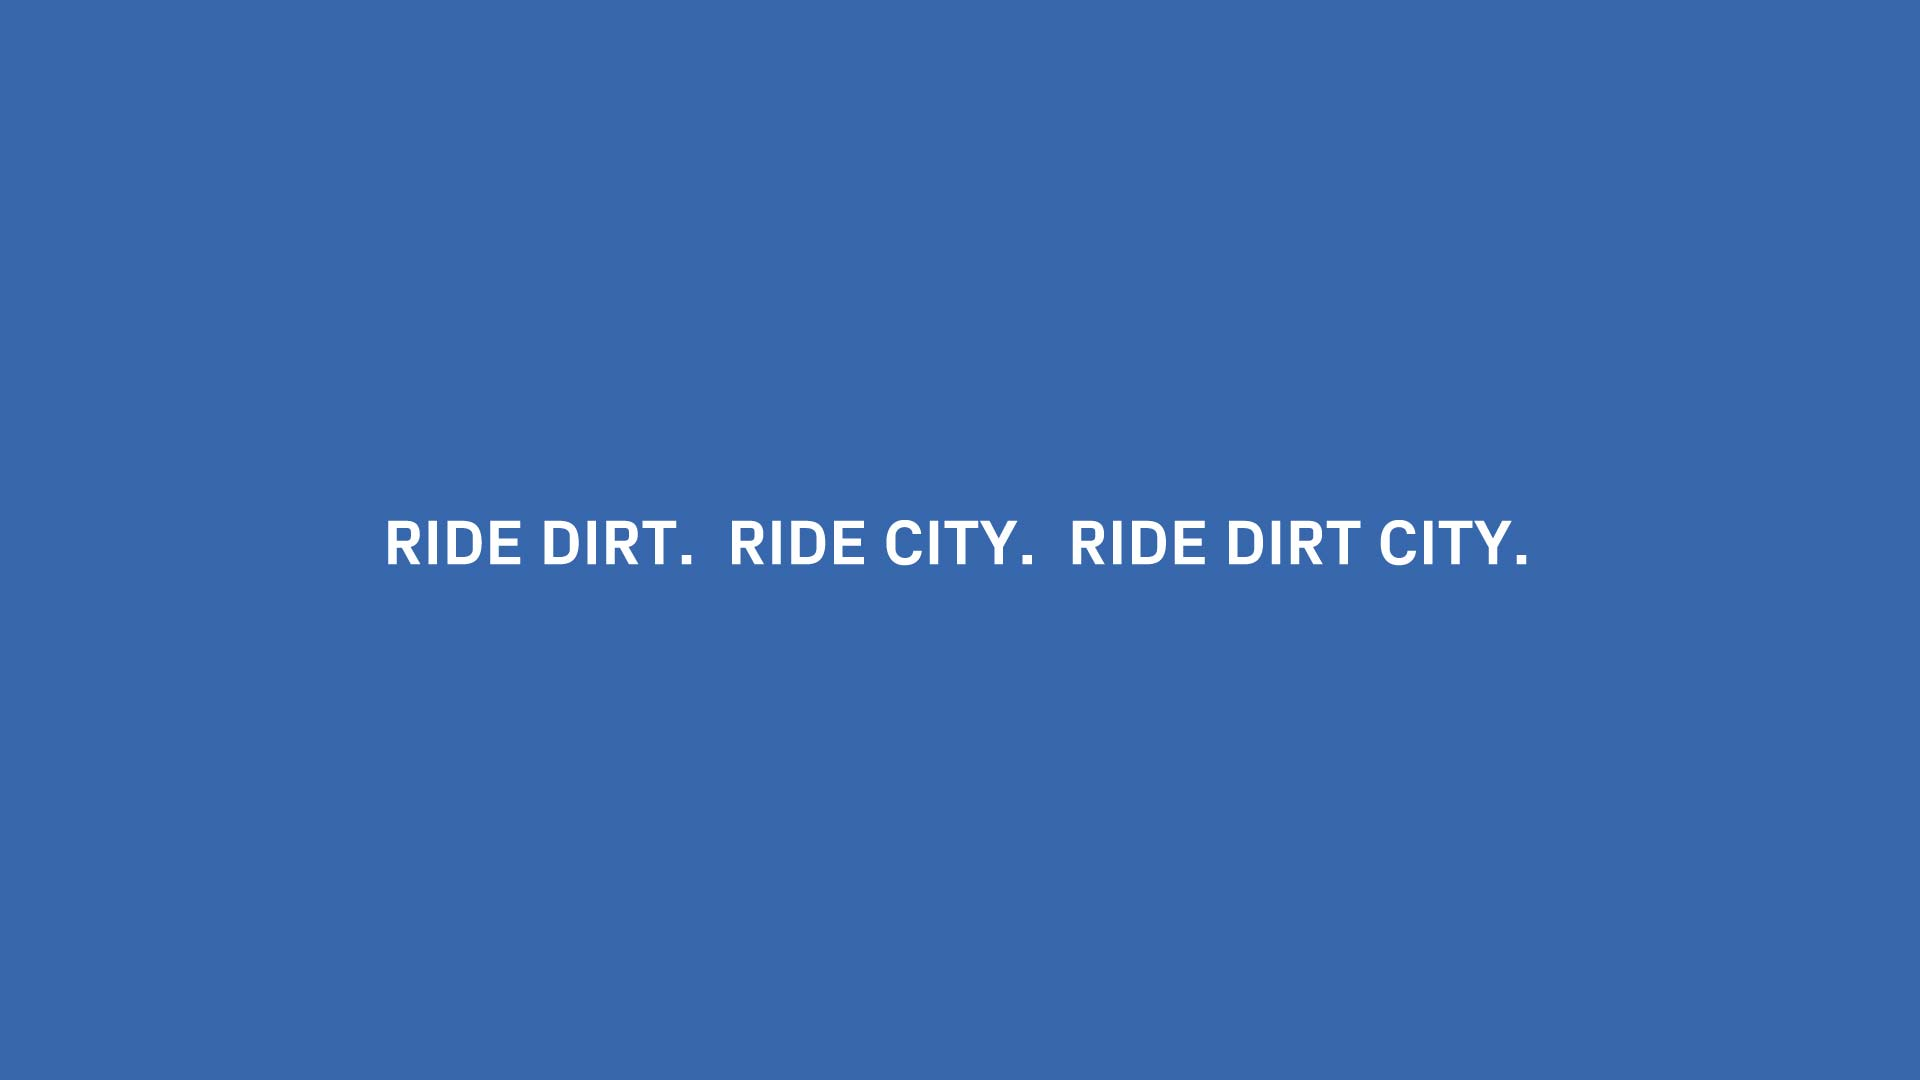 2019-02--wxwn-banners-dirtcity3.jpg